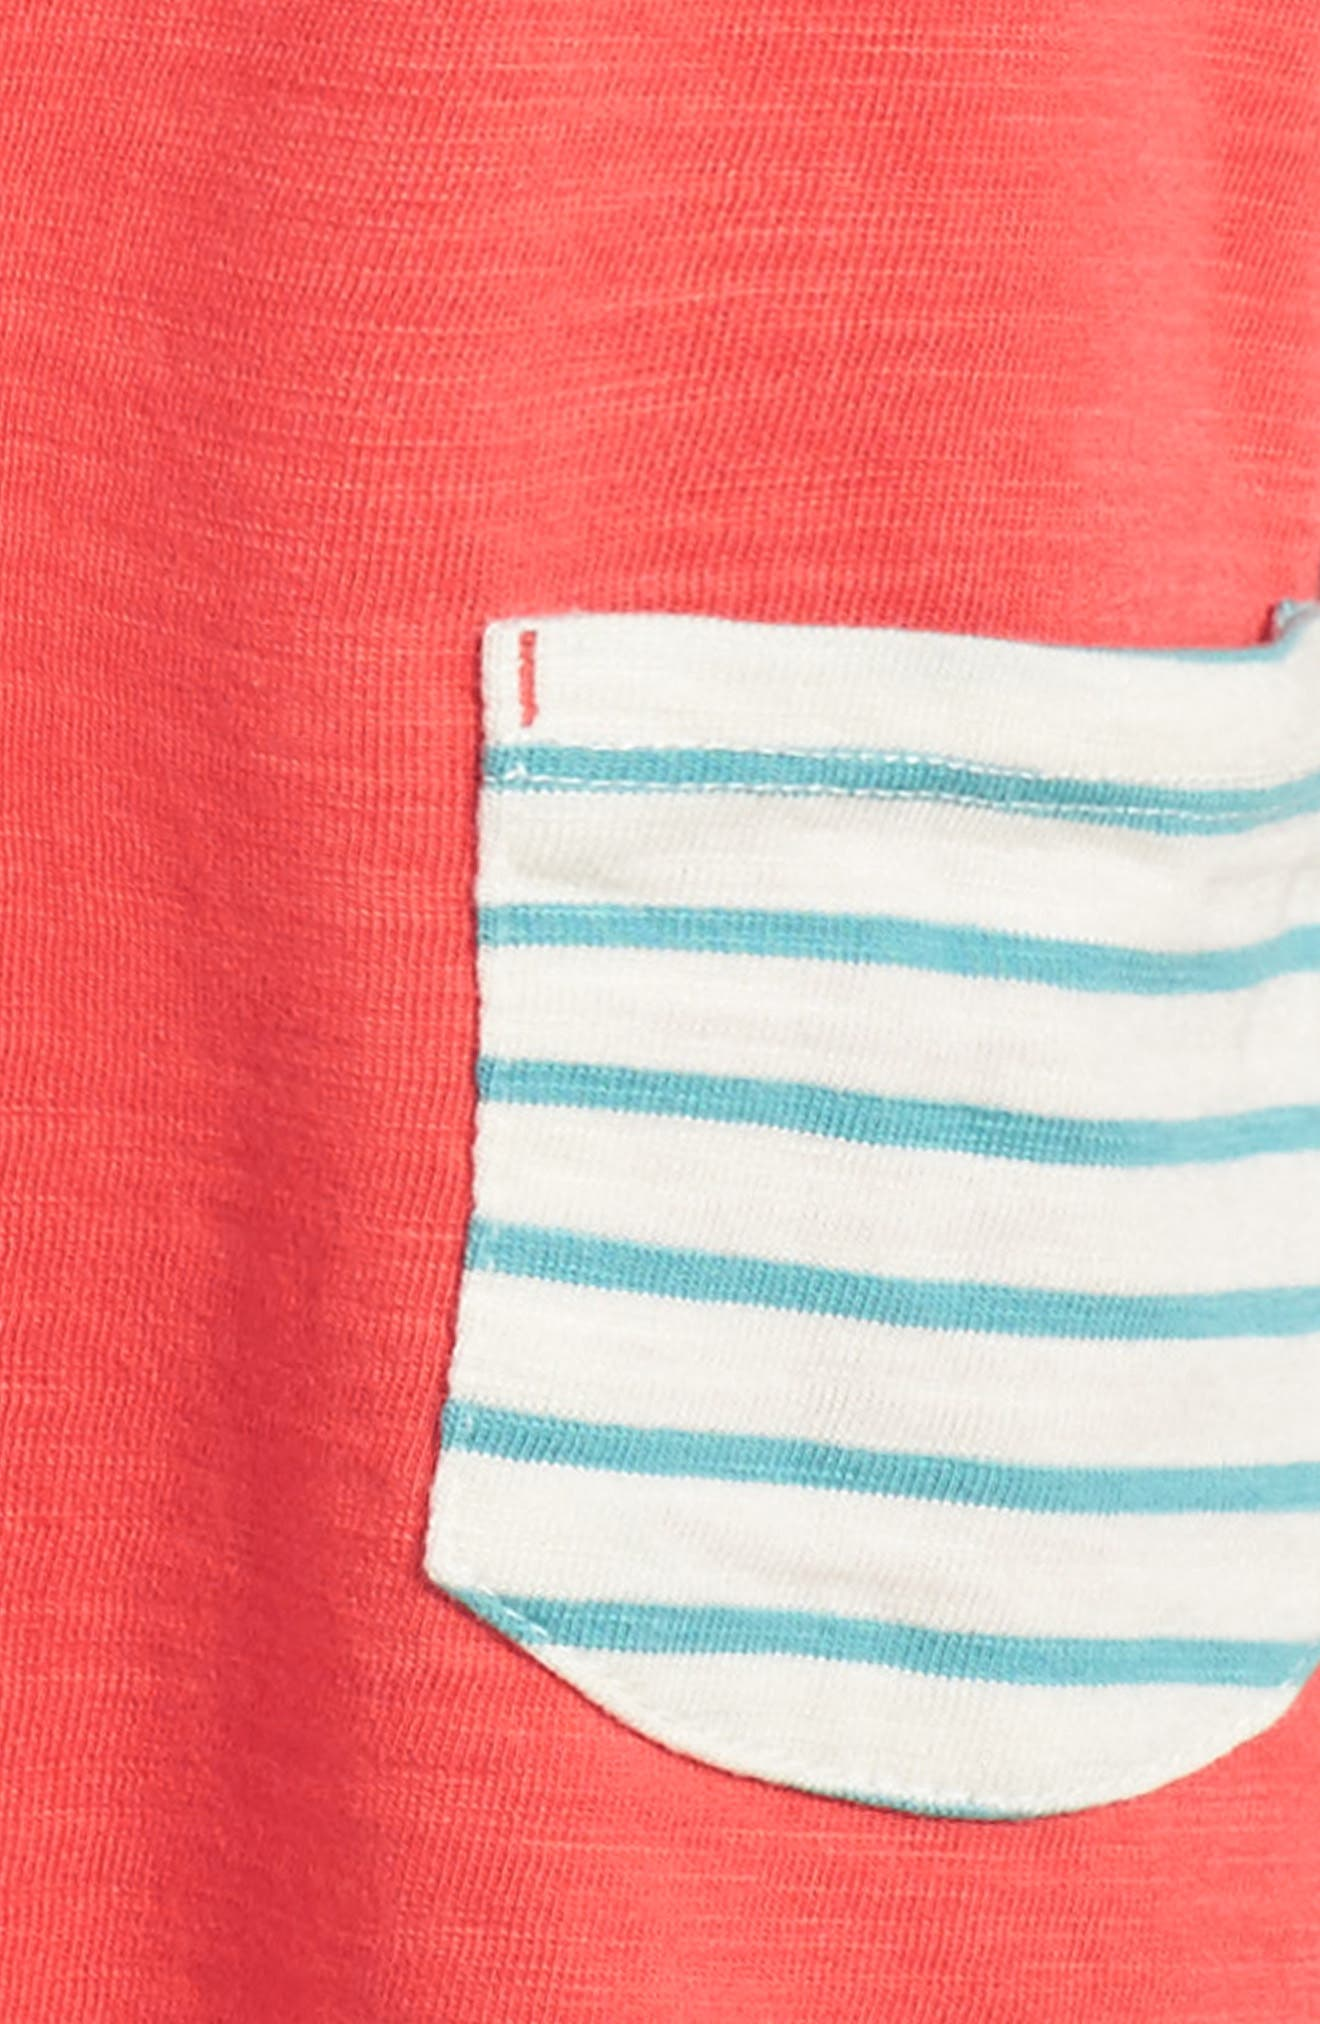 Alternate Image 3  - Mini Boden Stripey Jersey Dress (Toddler Girls, Little Girls & Big Girls)